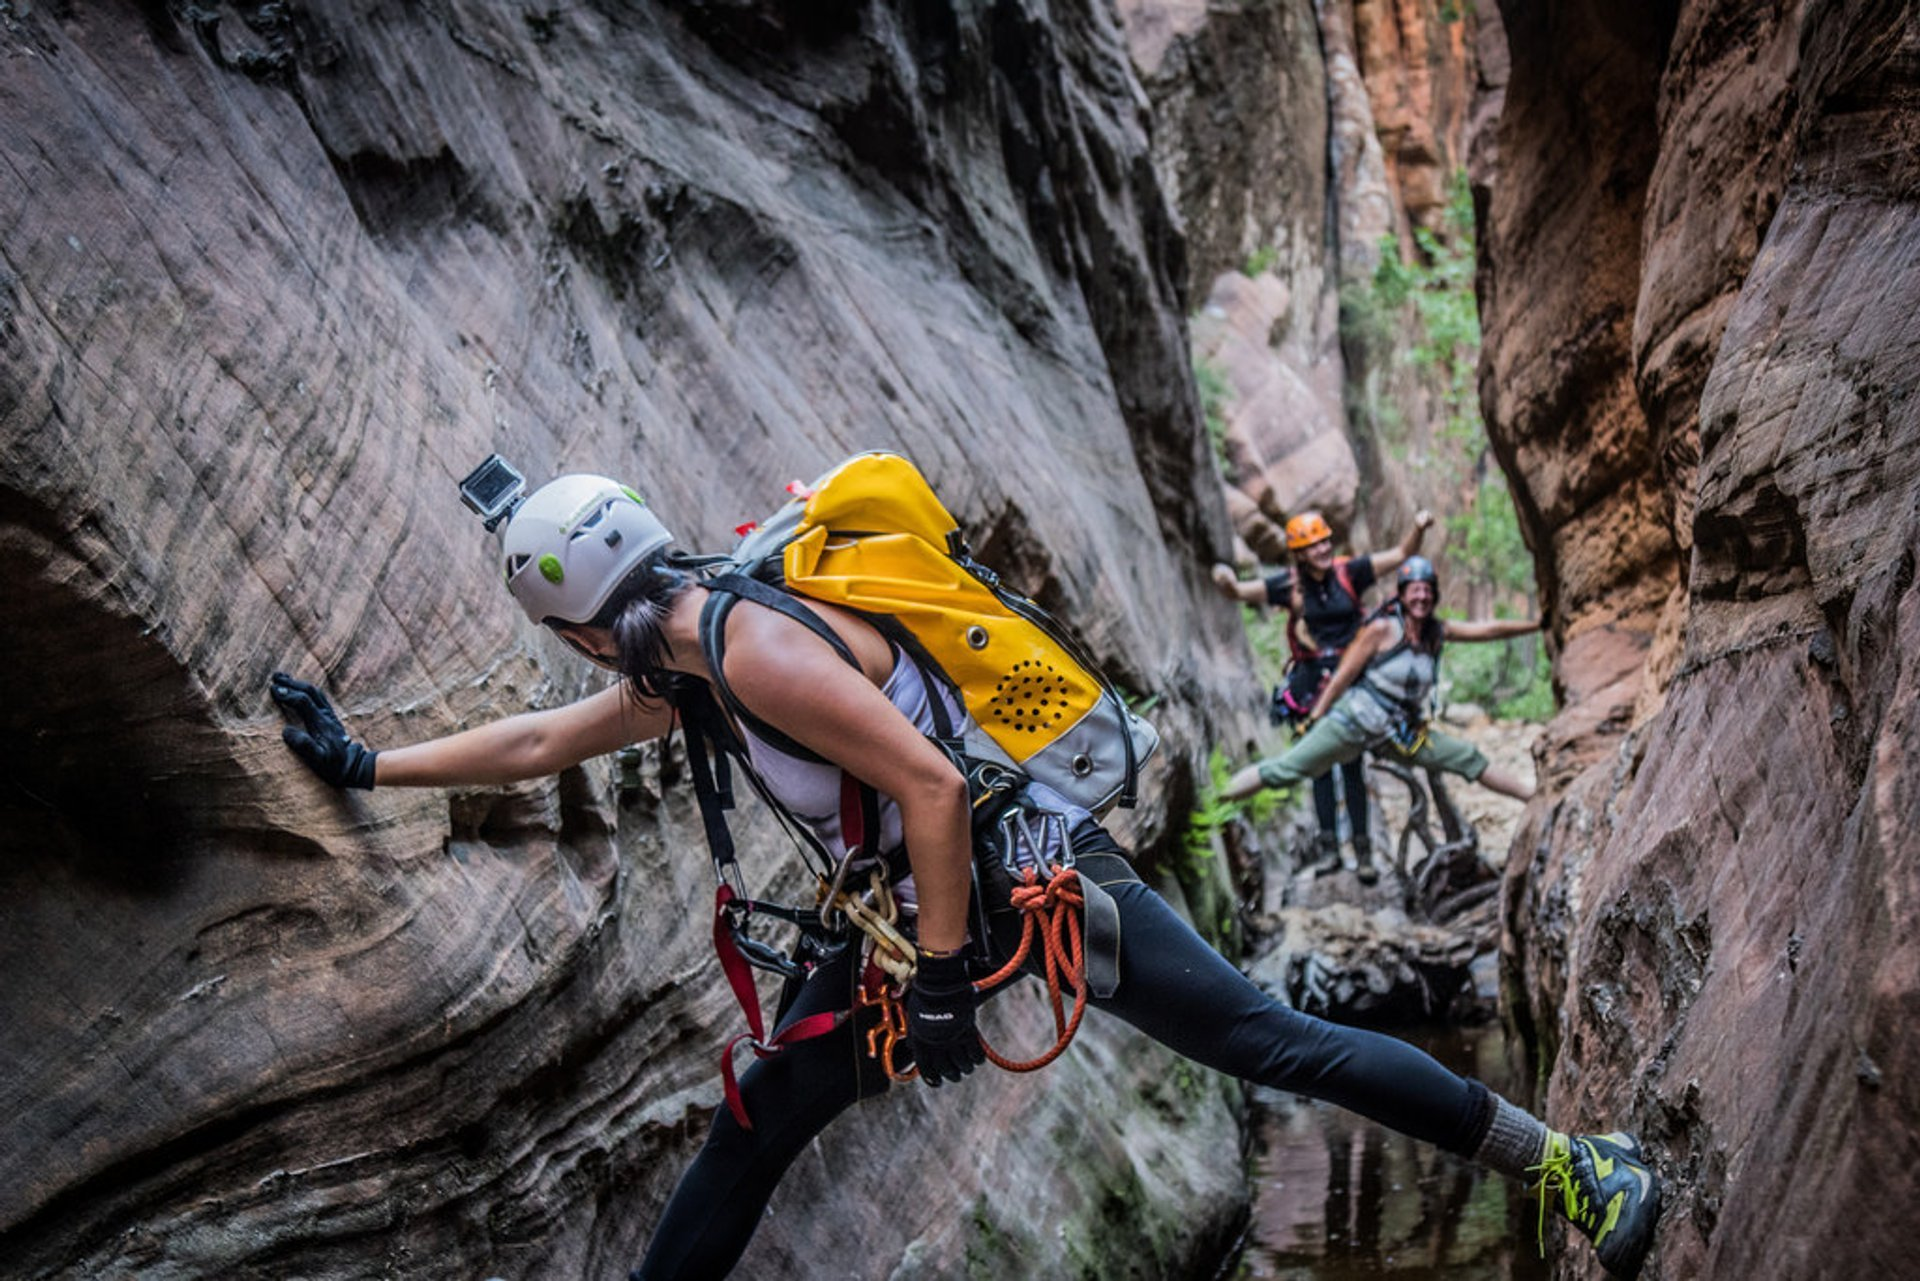 Best time for Canyoneering in Zion National Park in Utah 2019